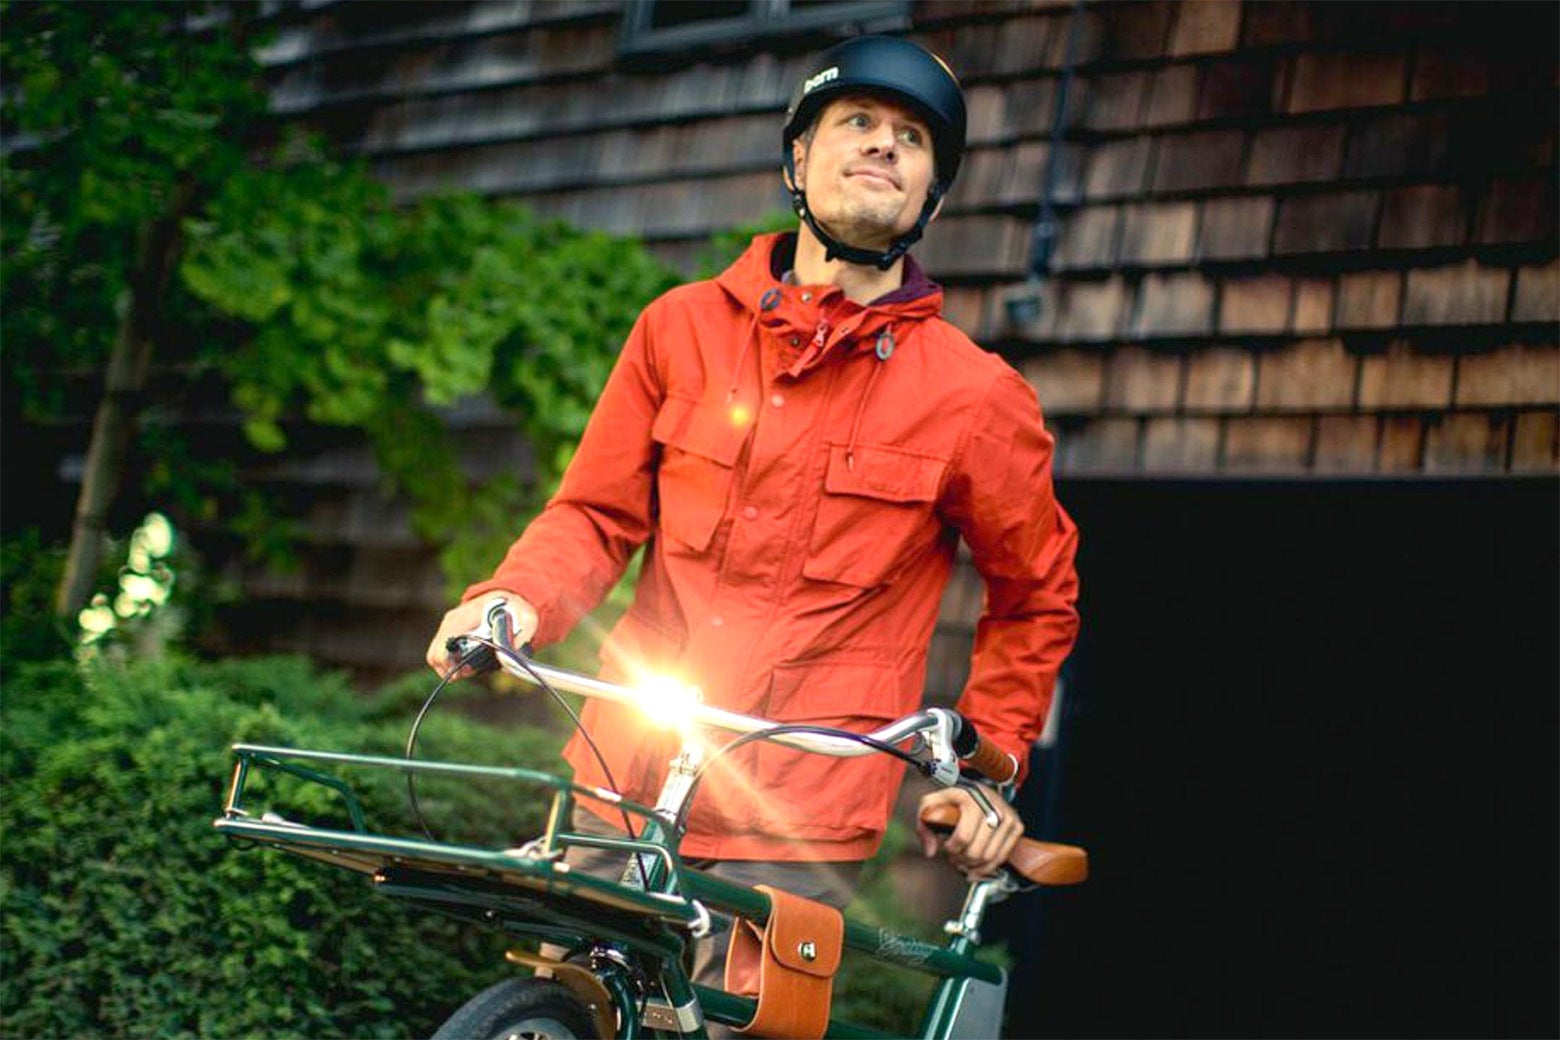 A man rides the Faraday Porteur e-bike.